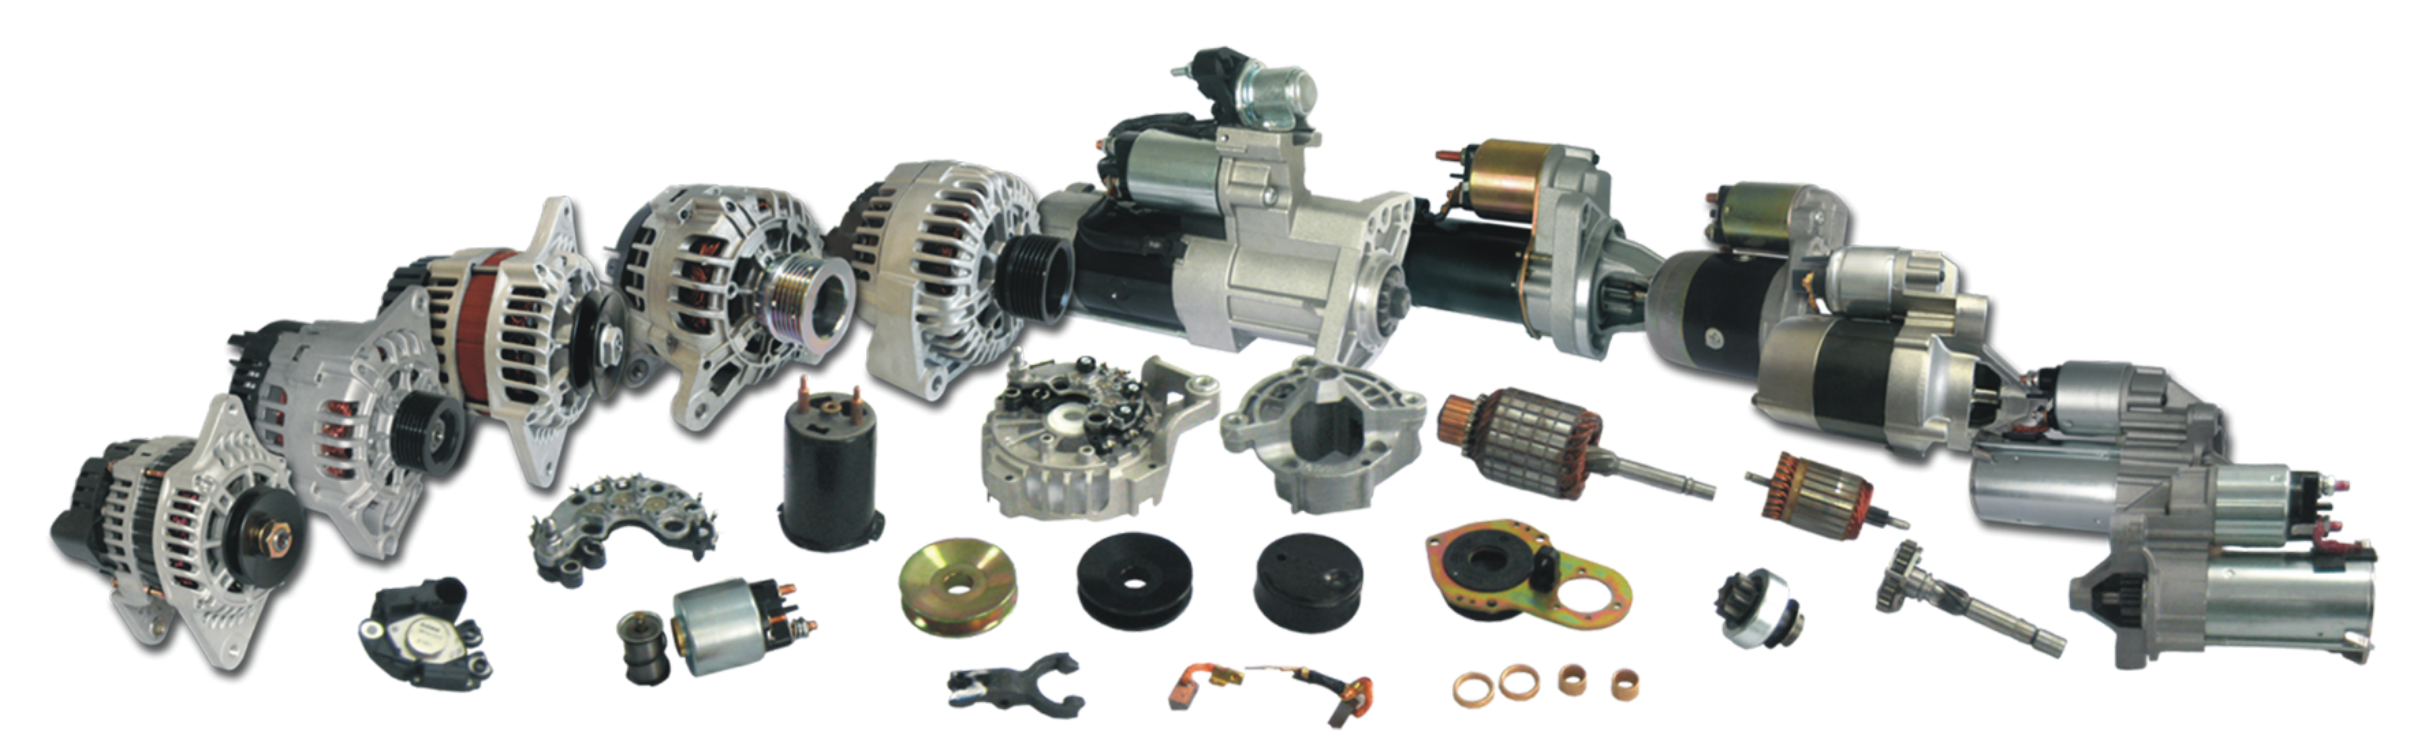 ava group alternator and starters Remanufactured Alternators and Starters ava alternator and starter